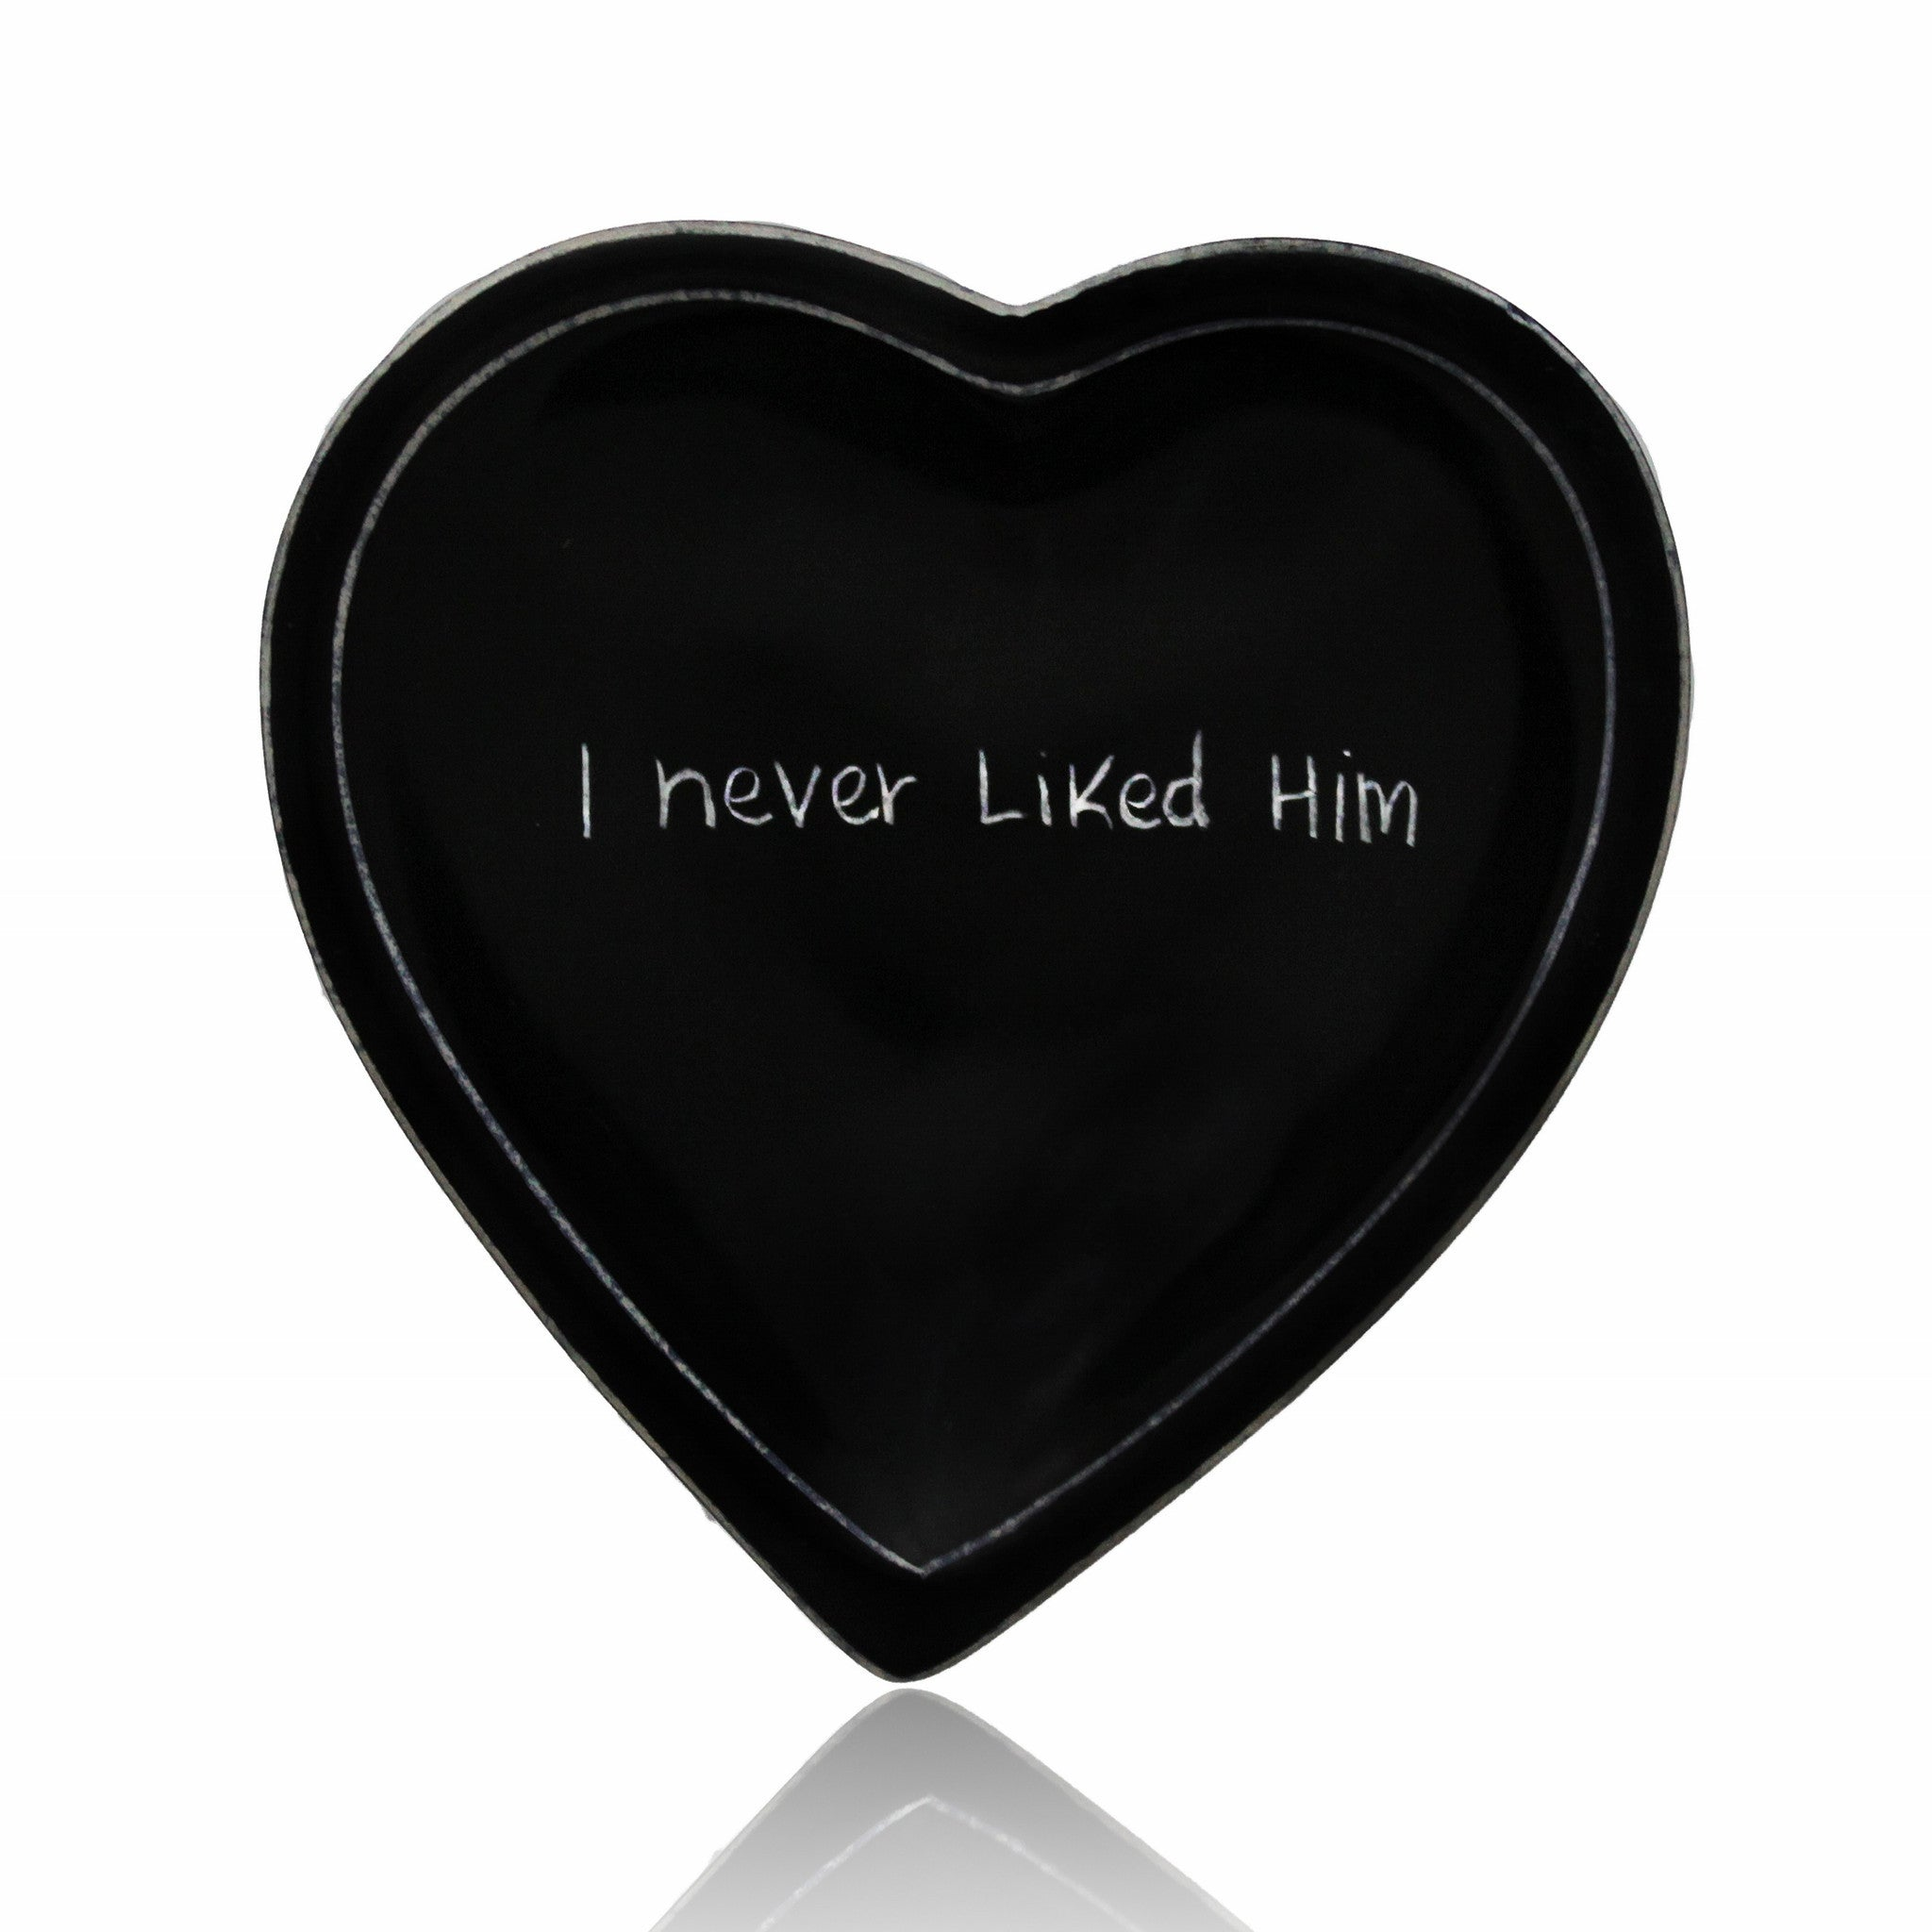 I Never Liked Him Kenyan Heart Shaped Soap Stone Dish by Venture Imports